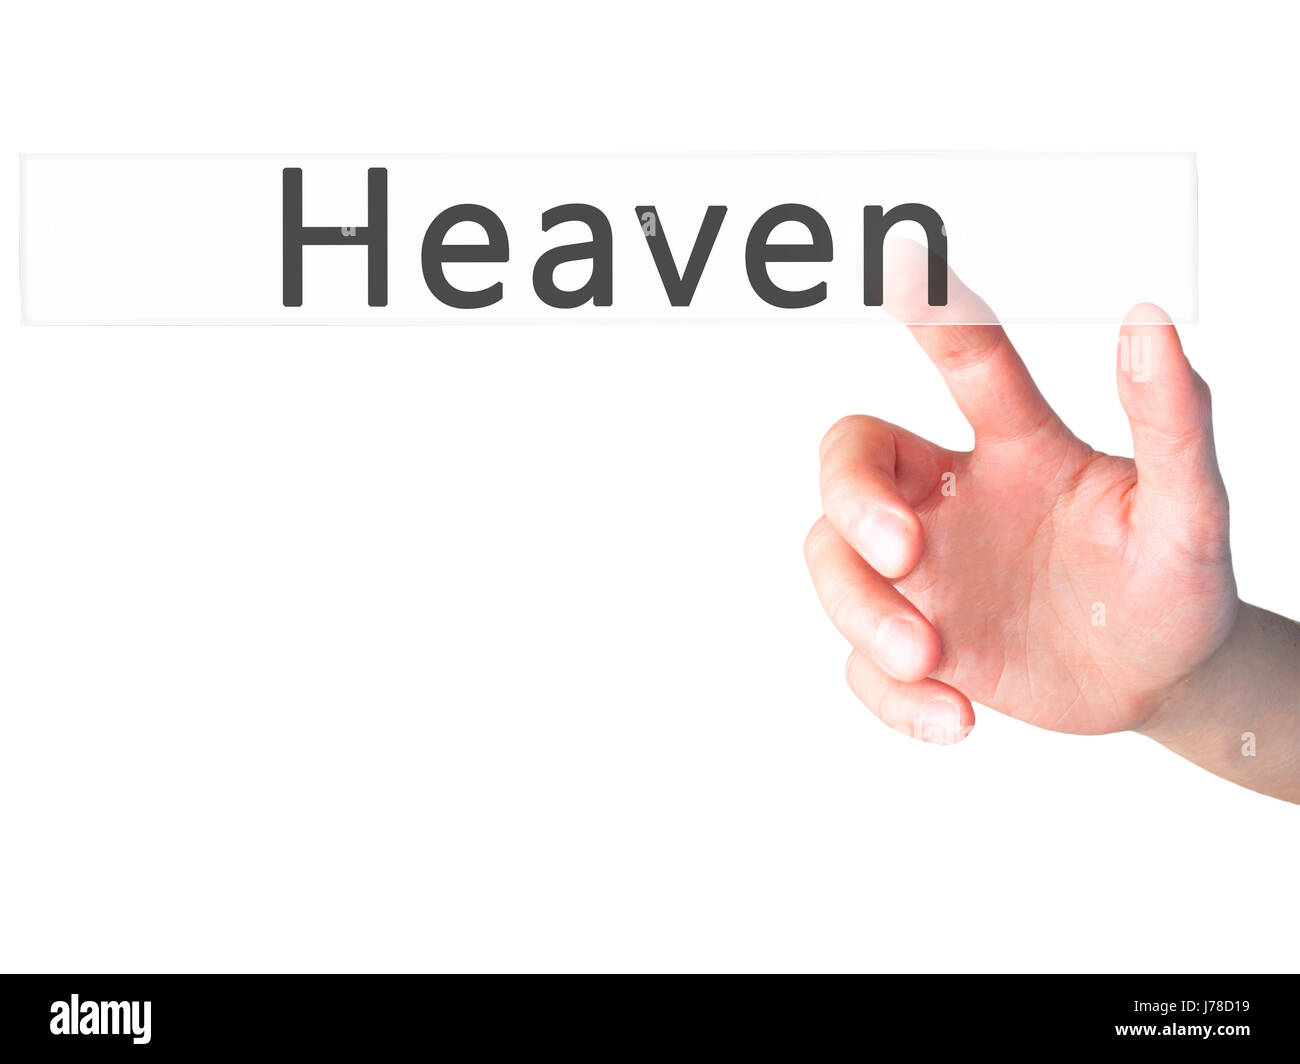 Heaven - Hand pressing a button on blurred background concept . Business, technology, internet concept. Stock Photo Stock Photo